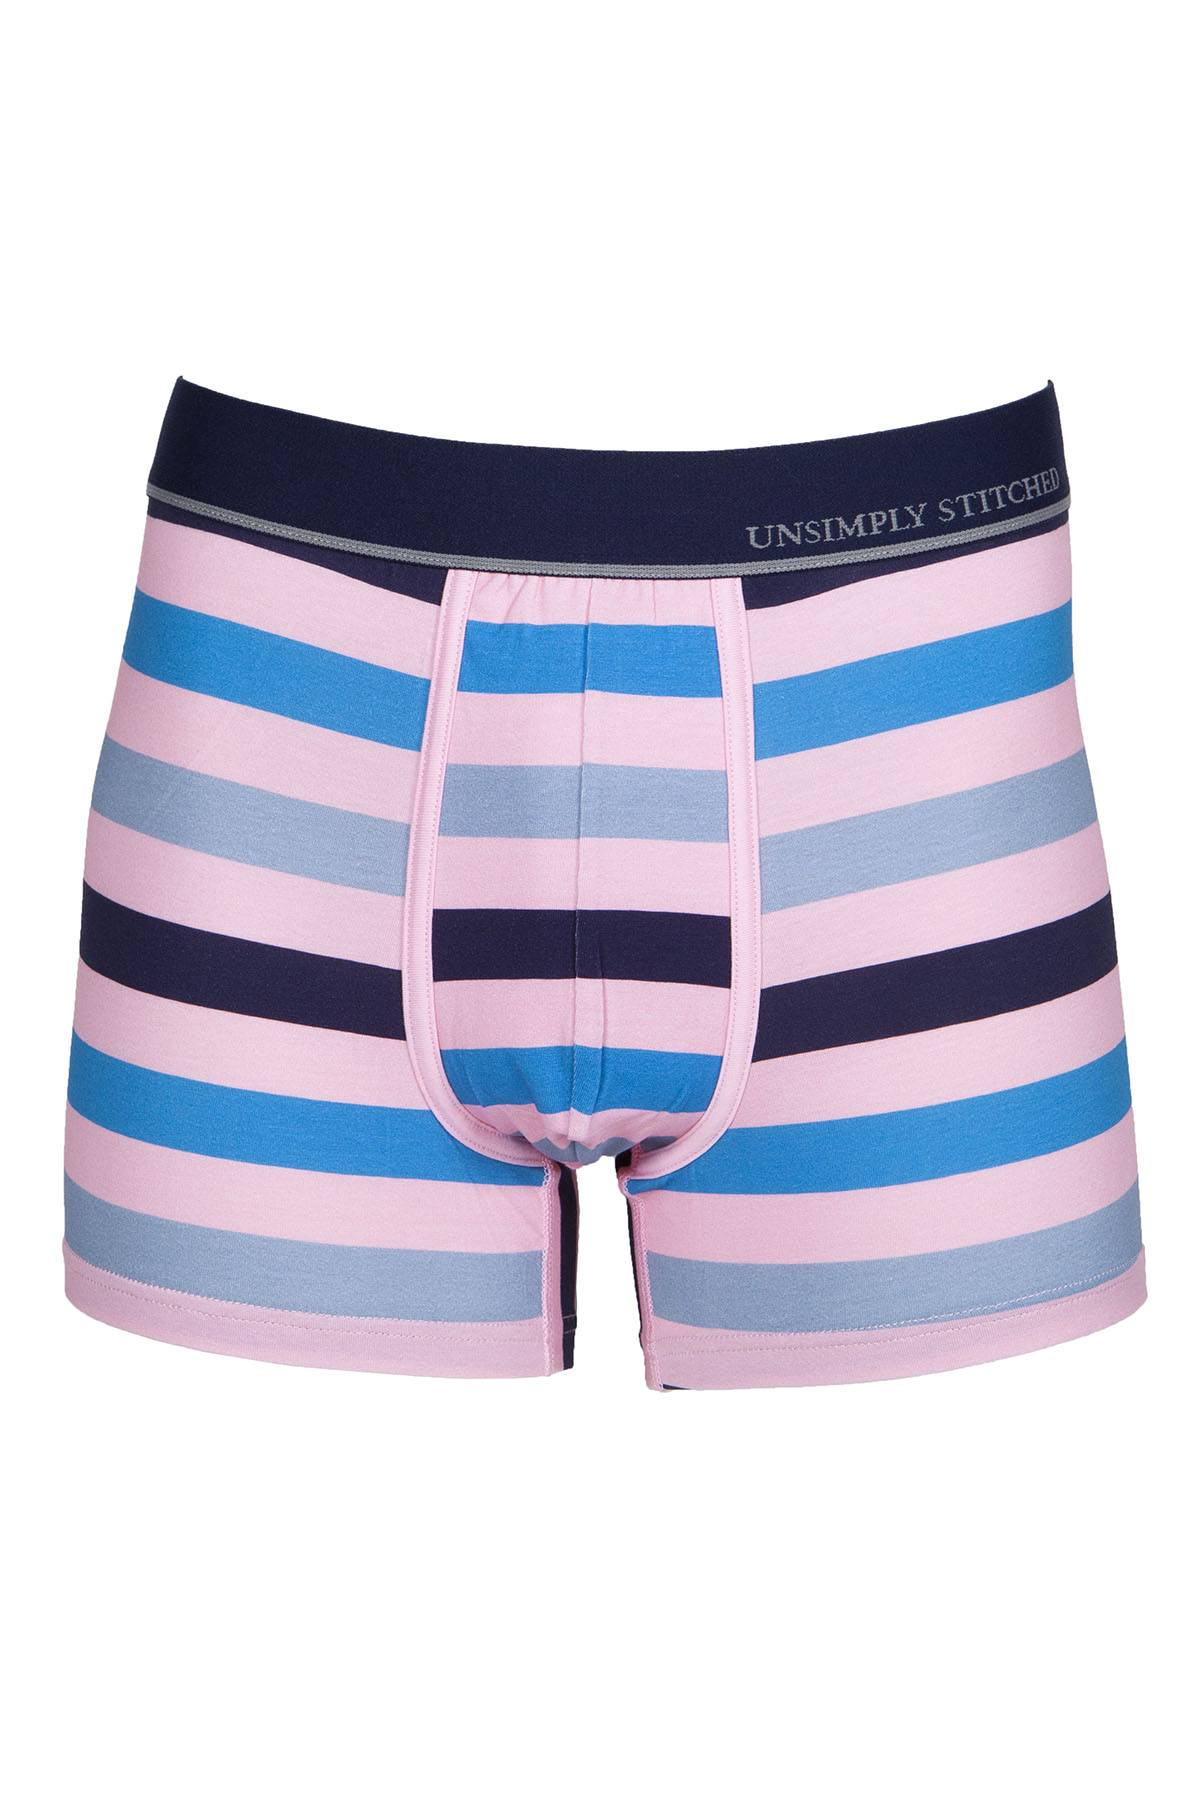 Unsimply Stitched Pink Colored Stripe Trunk